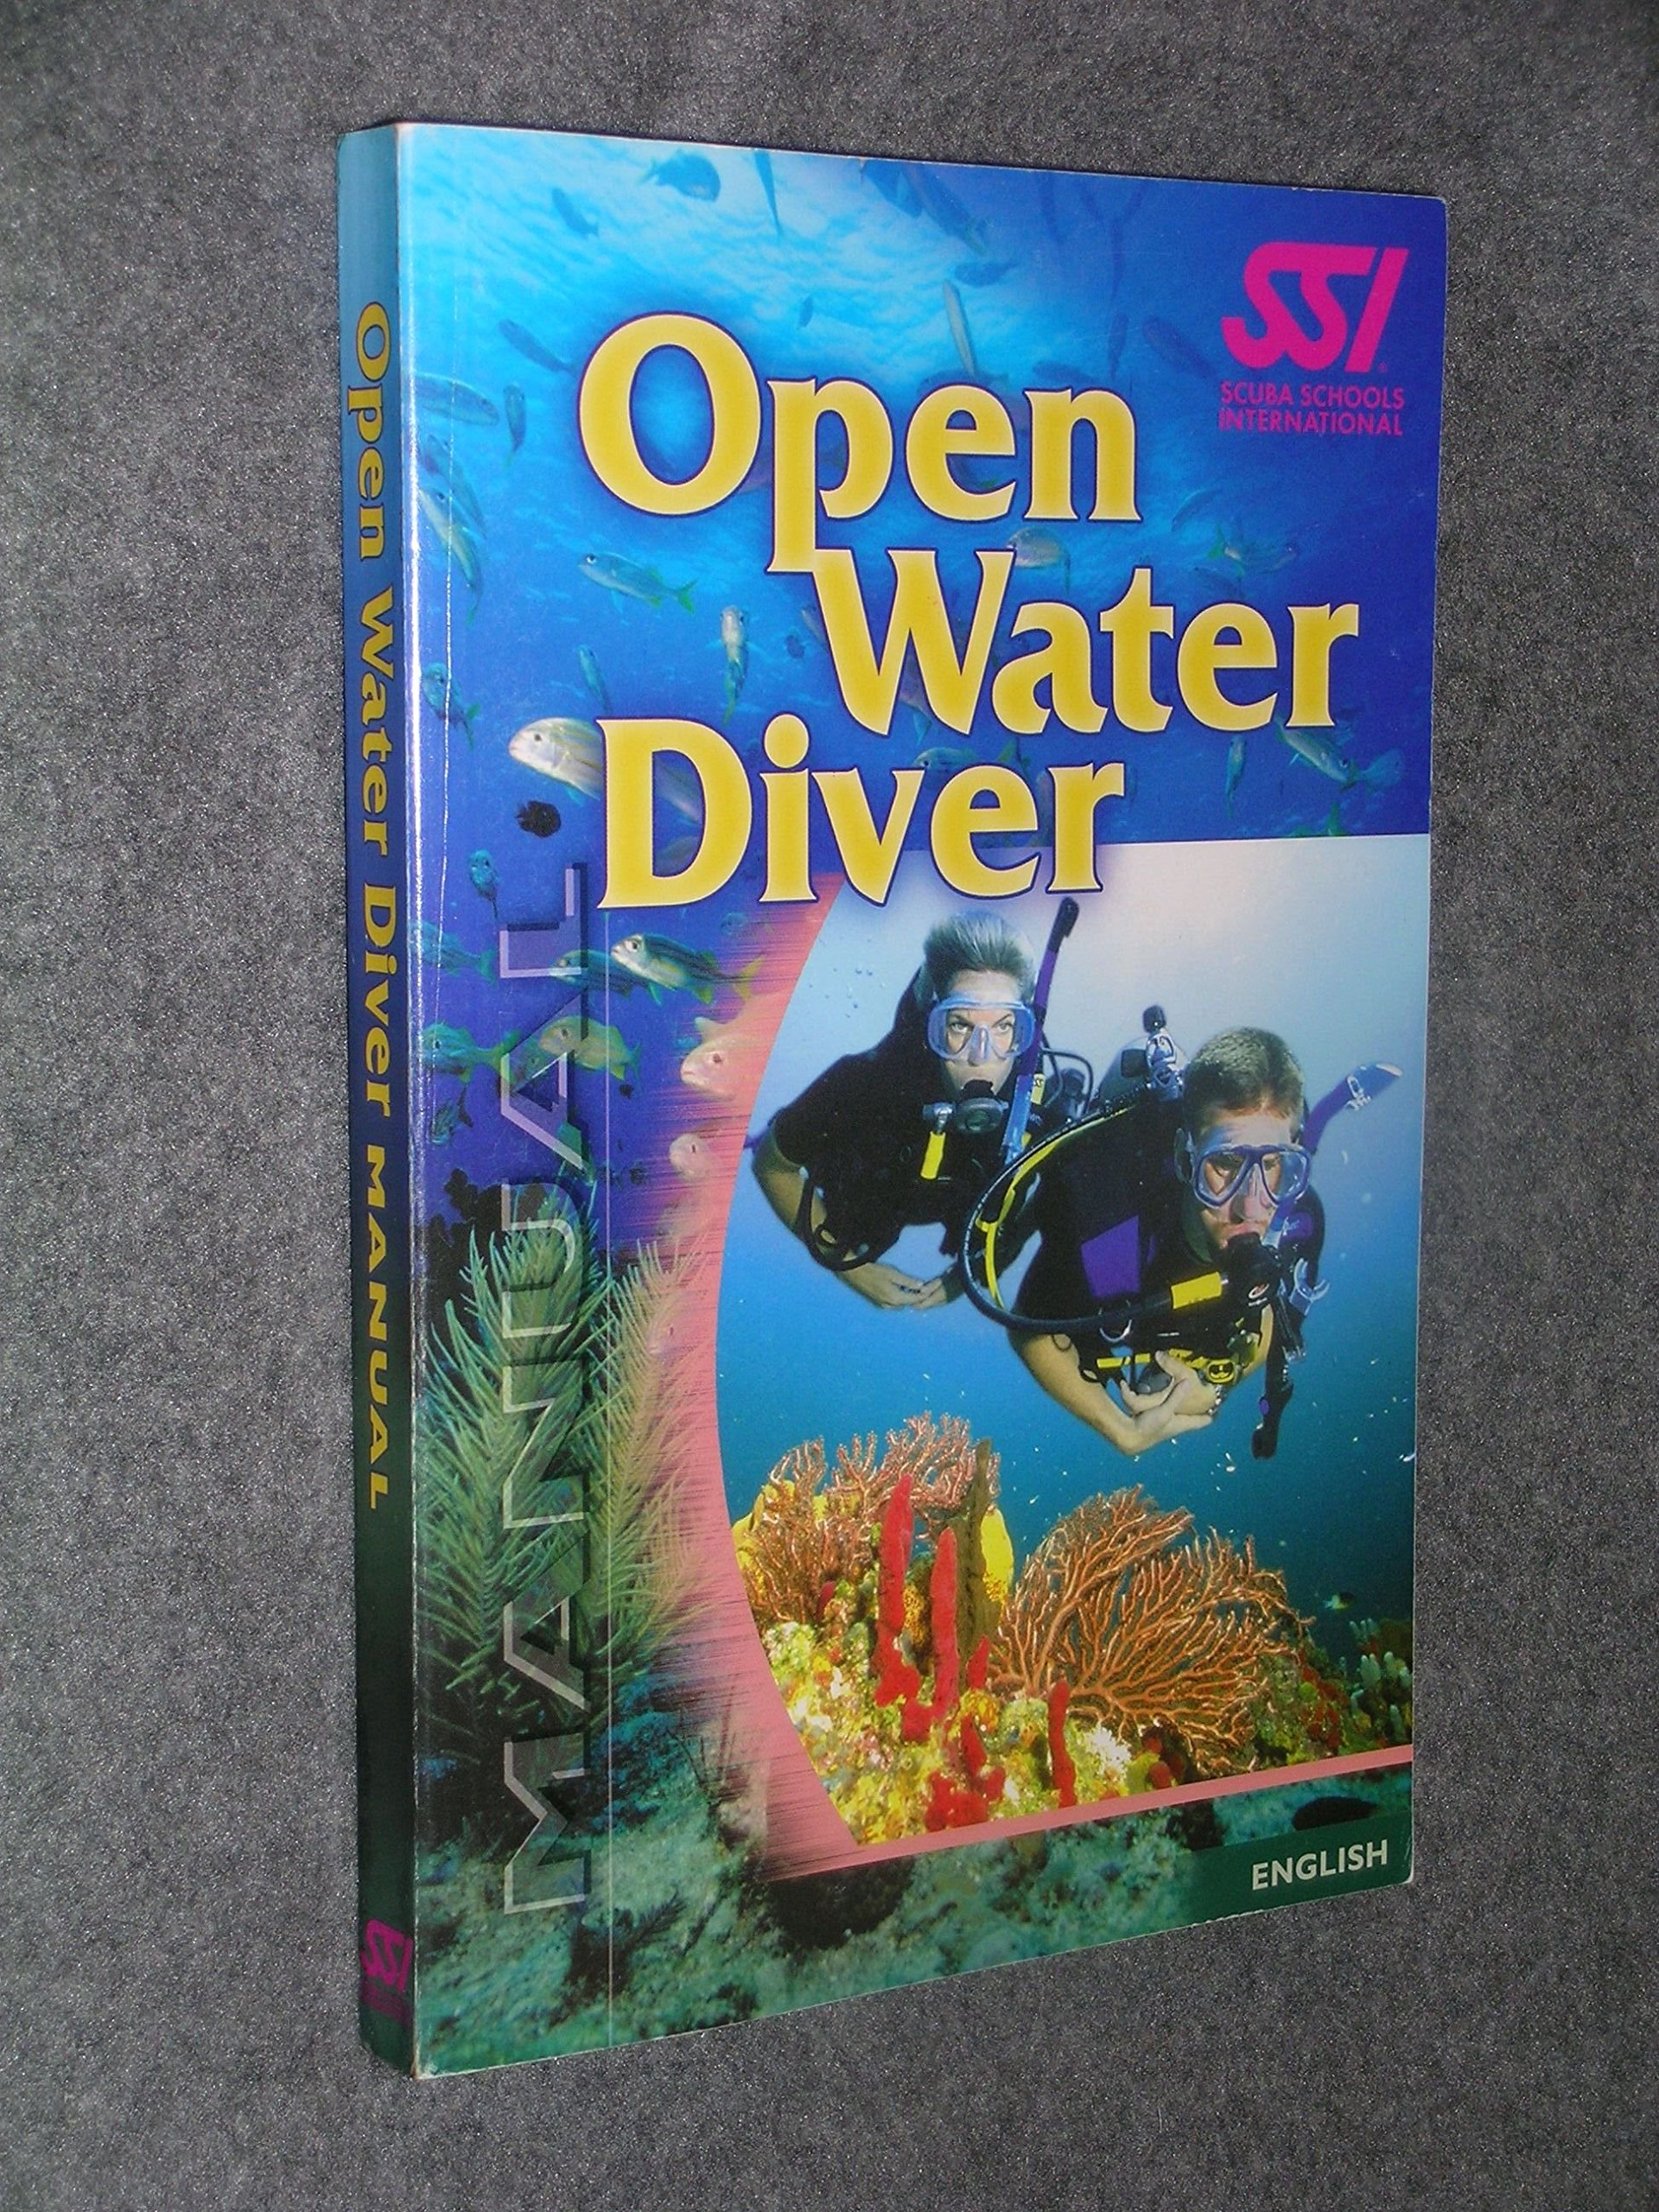 Open Water Diver Manual: Scuba Schools International, Color Photographs and  Illustrations: 9781880229736: Amazon.com: Books